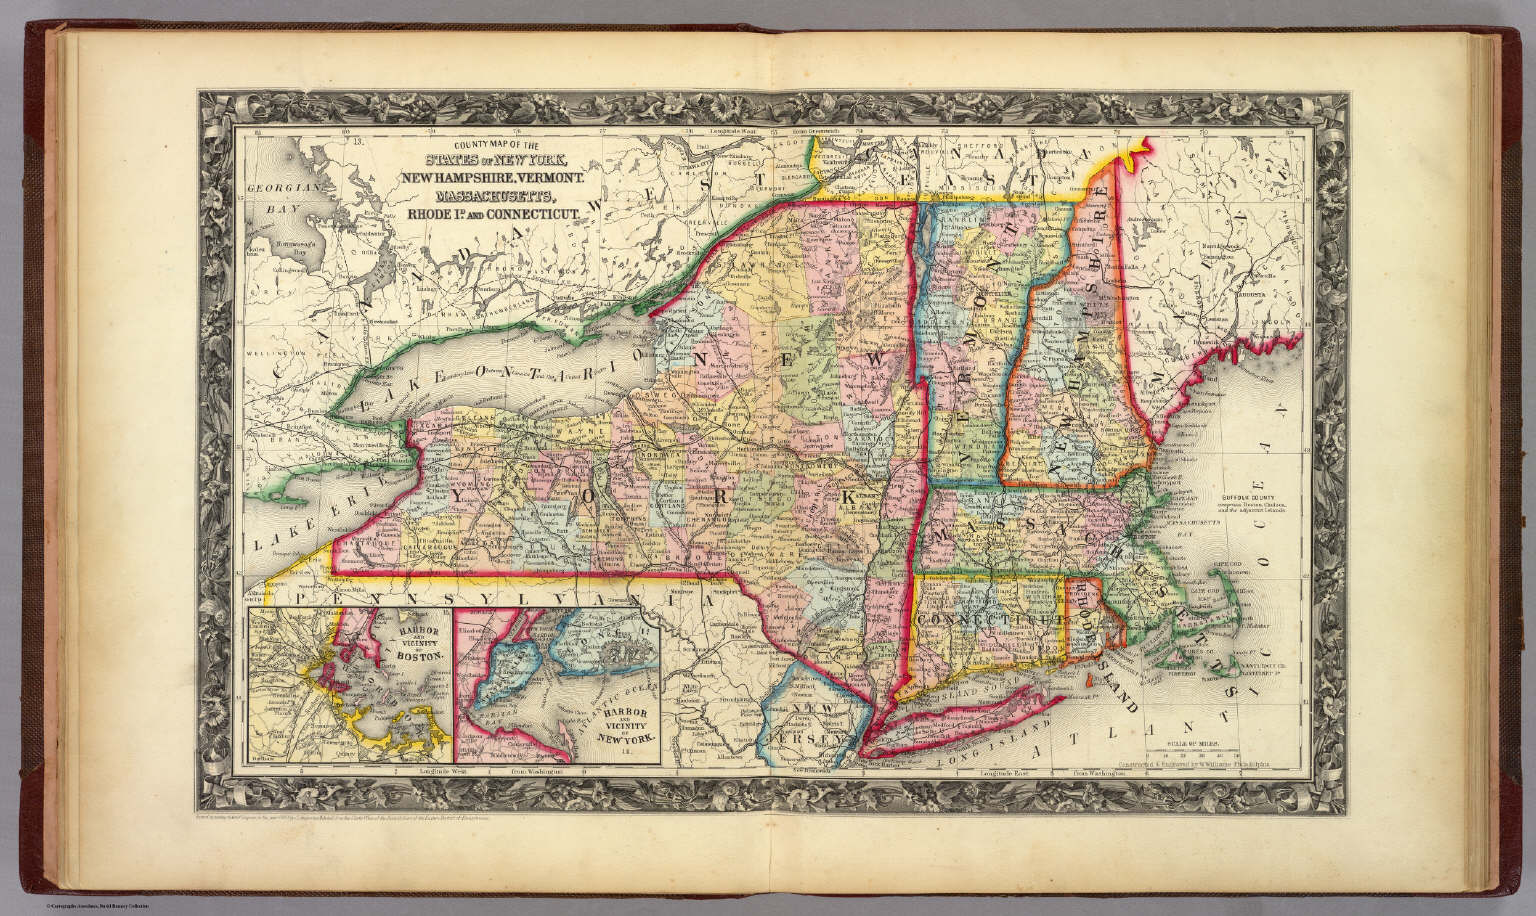 County Map Of The States Of New York New Hampshire Vermont - Us states map new york